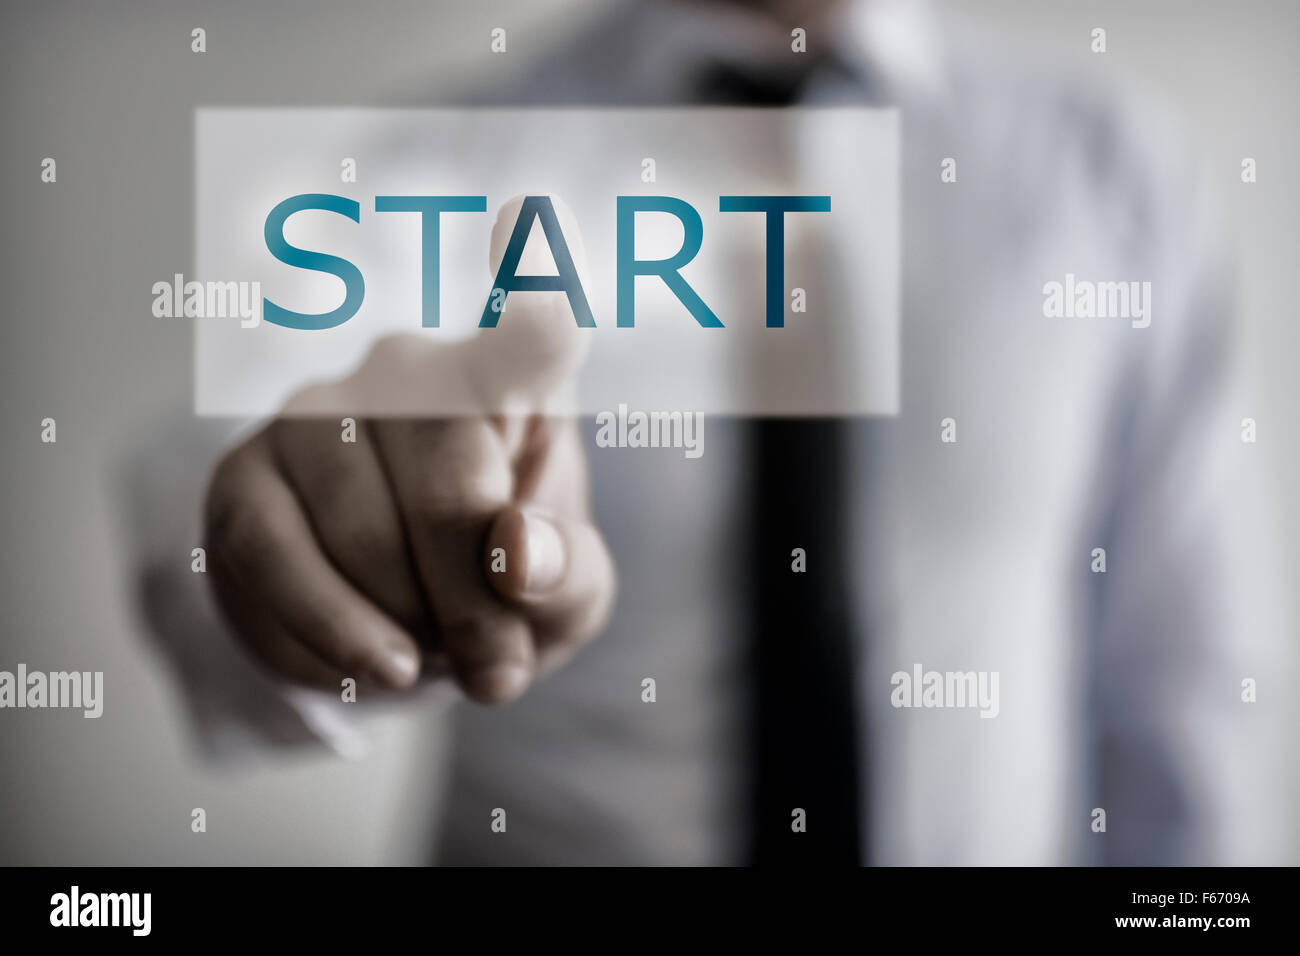 Start Button - Stock Image